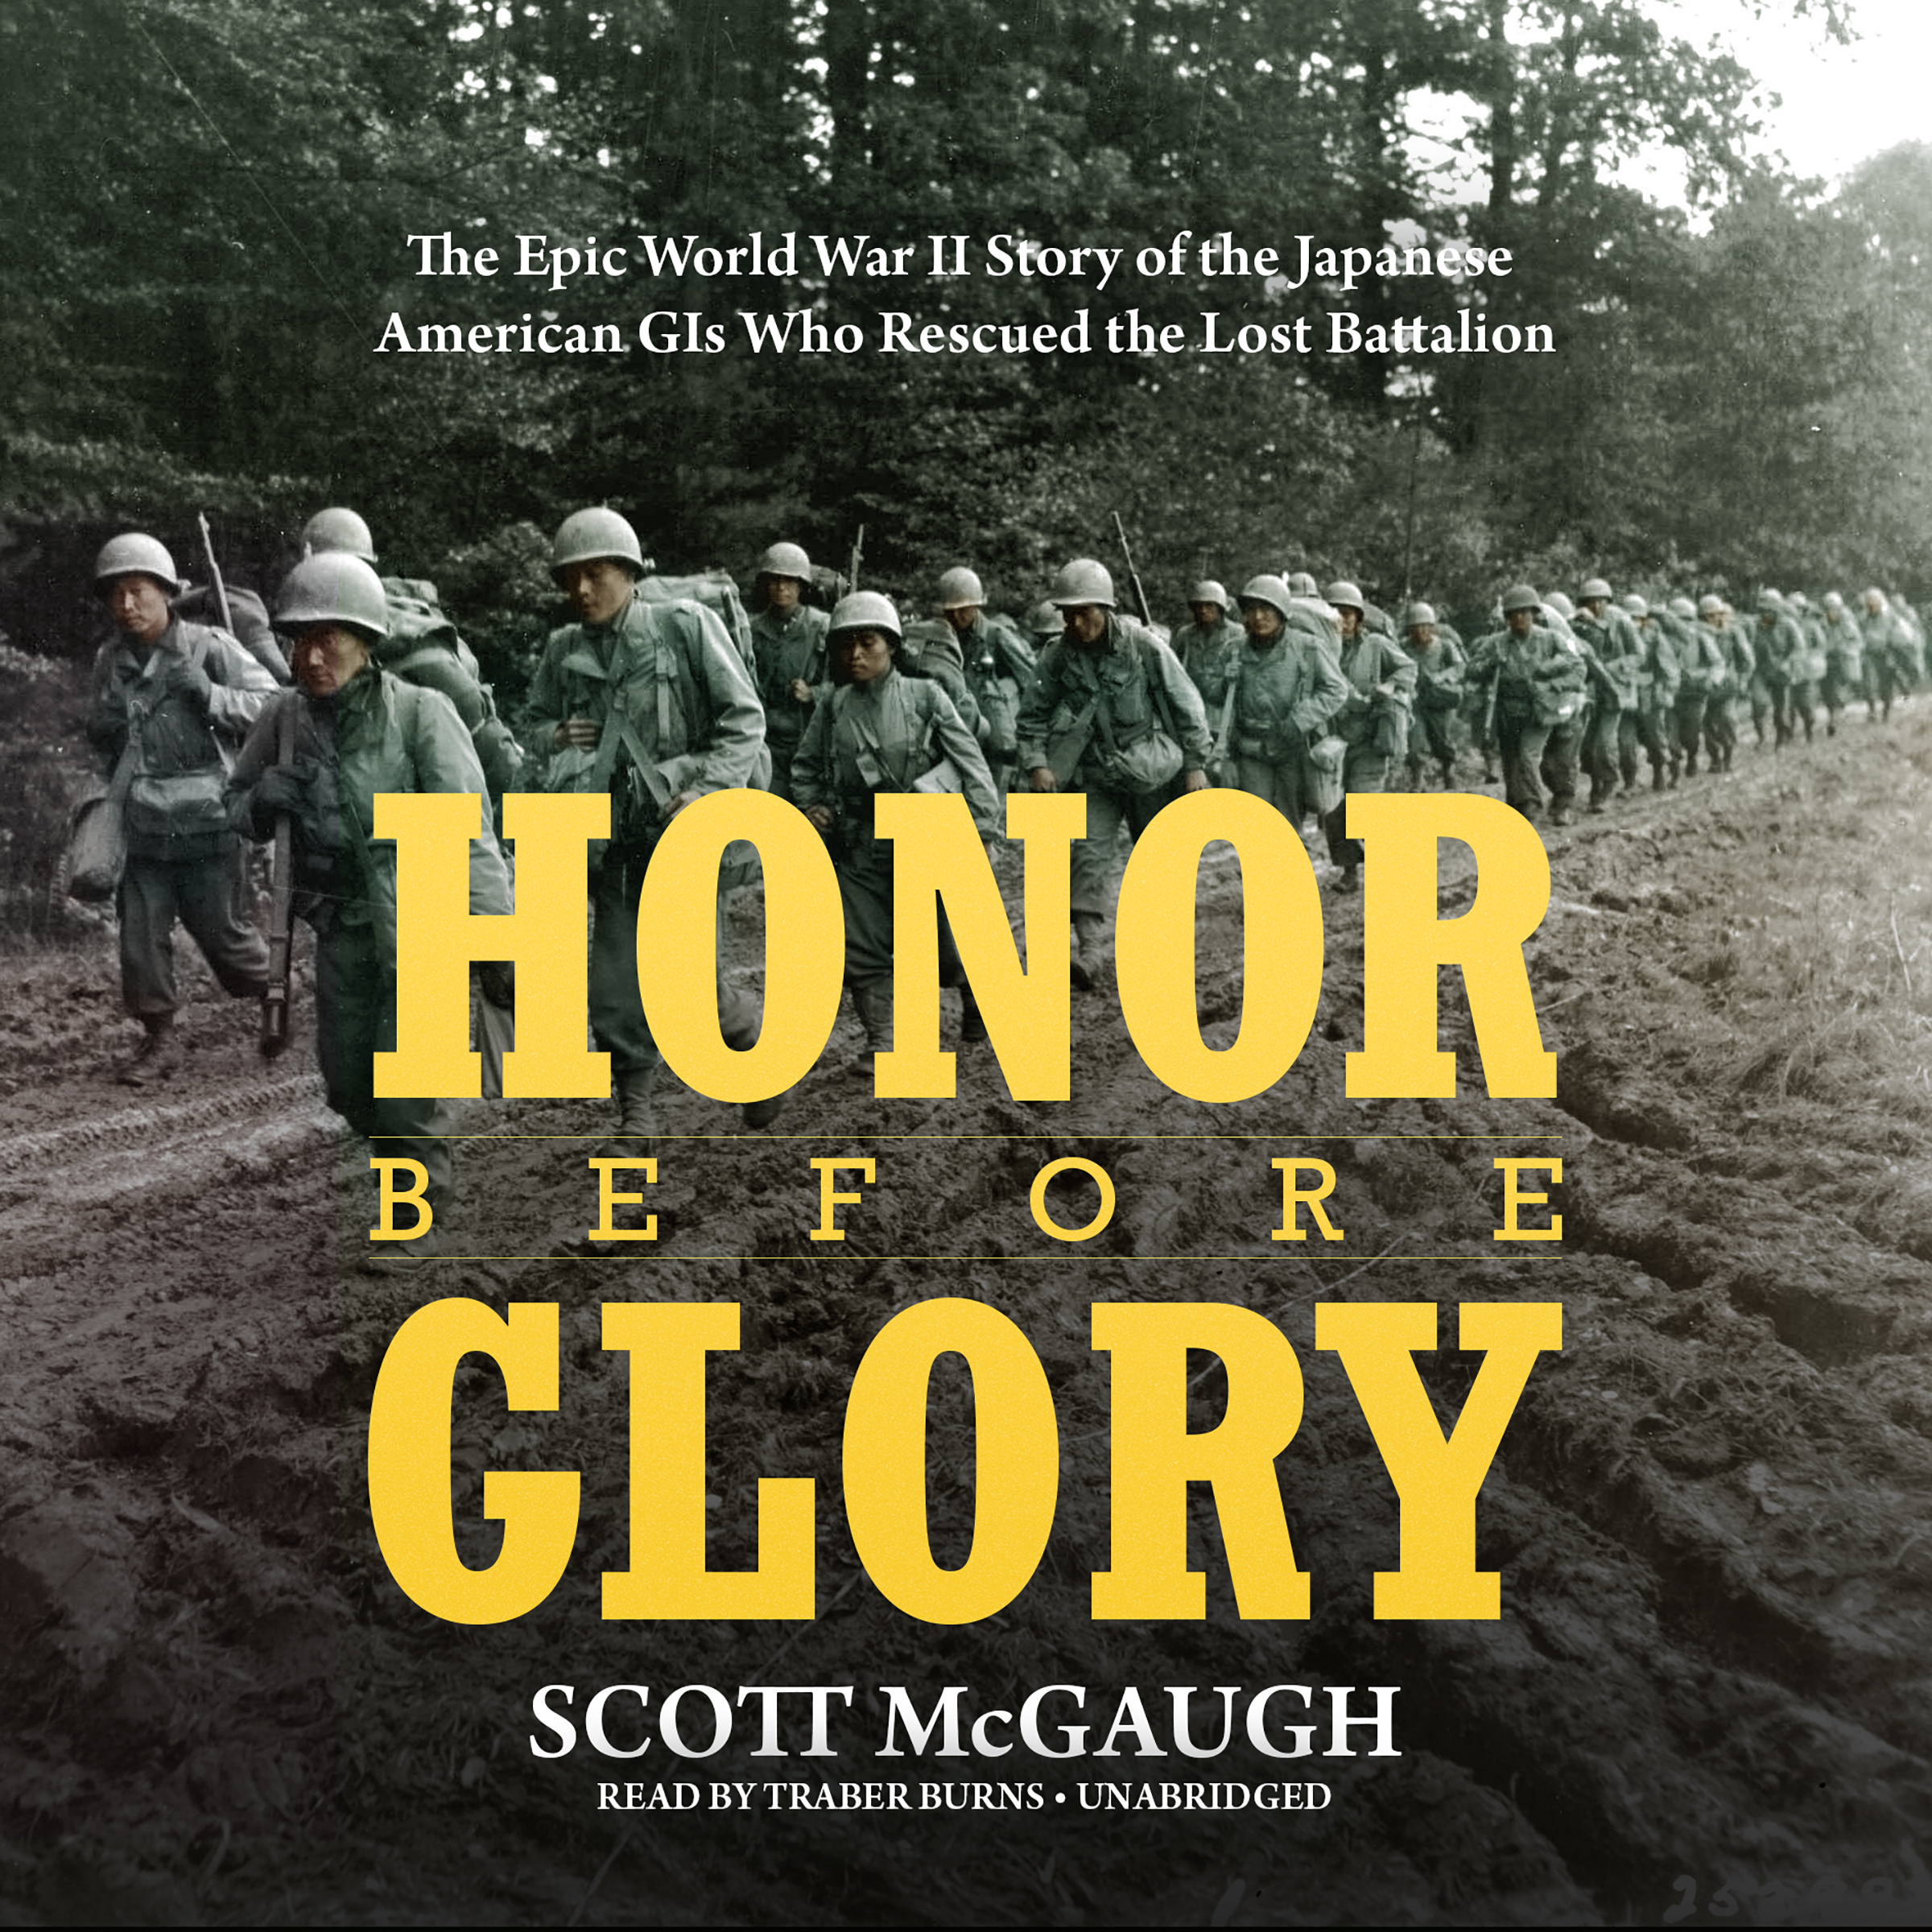 Printable Honor before Glory: The Epic World War II Story of the Japanese American GIs Who Rescued the Lost Battalion  Audiobook Cover Art